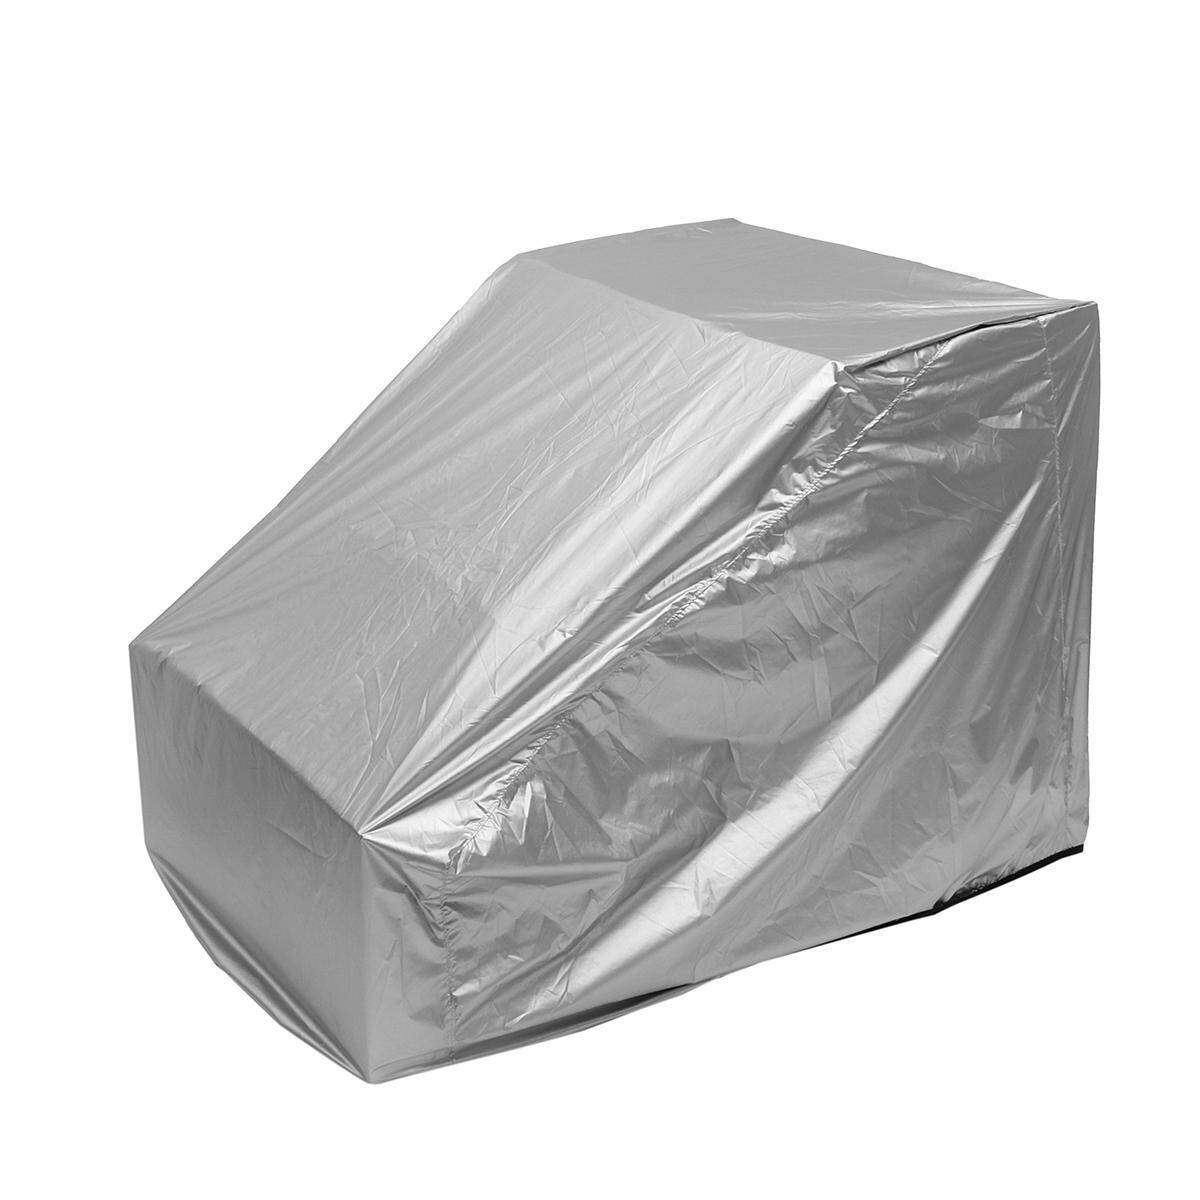 Boat Center Console Cover Fits 45h*46w*40d Heavy Duty - Intl By Audew.